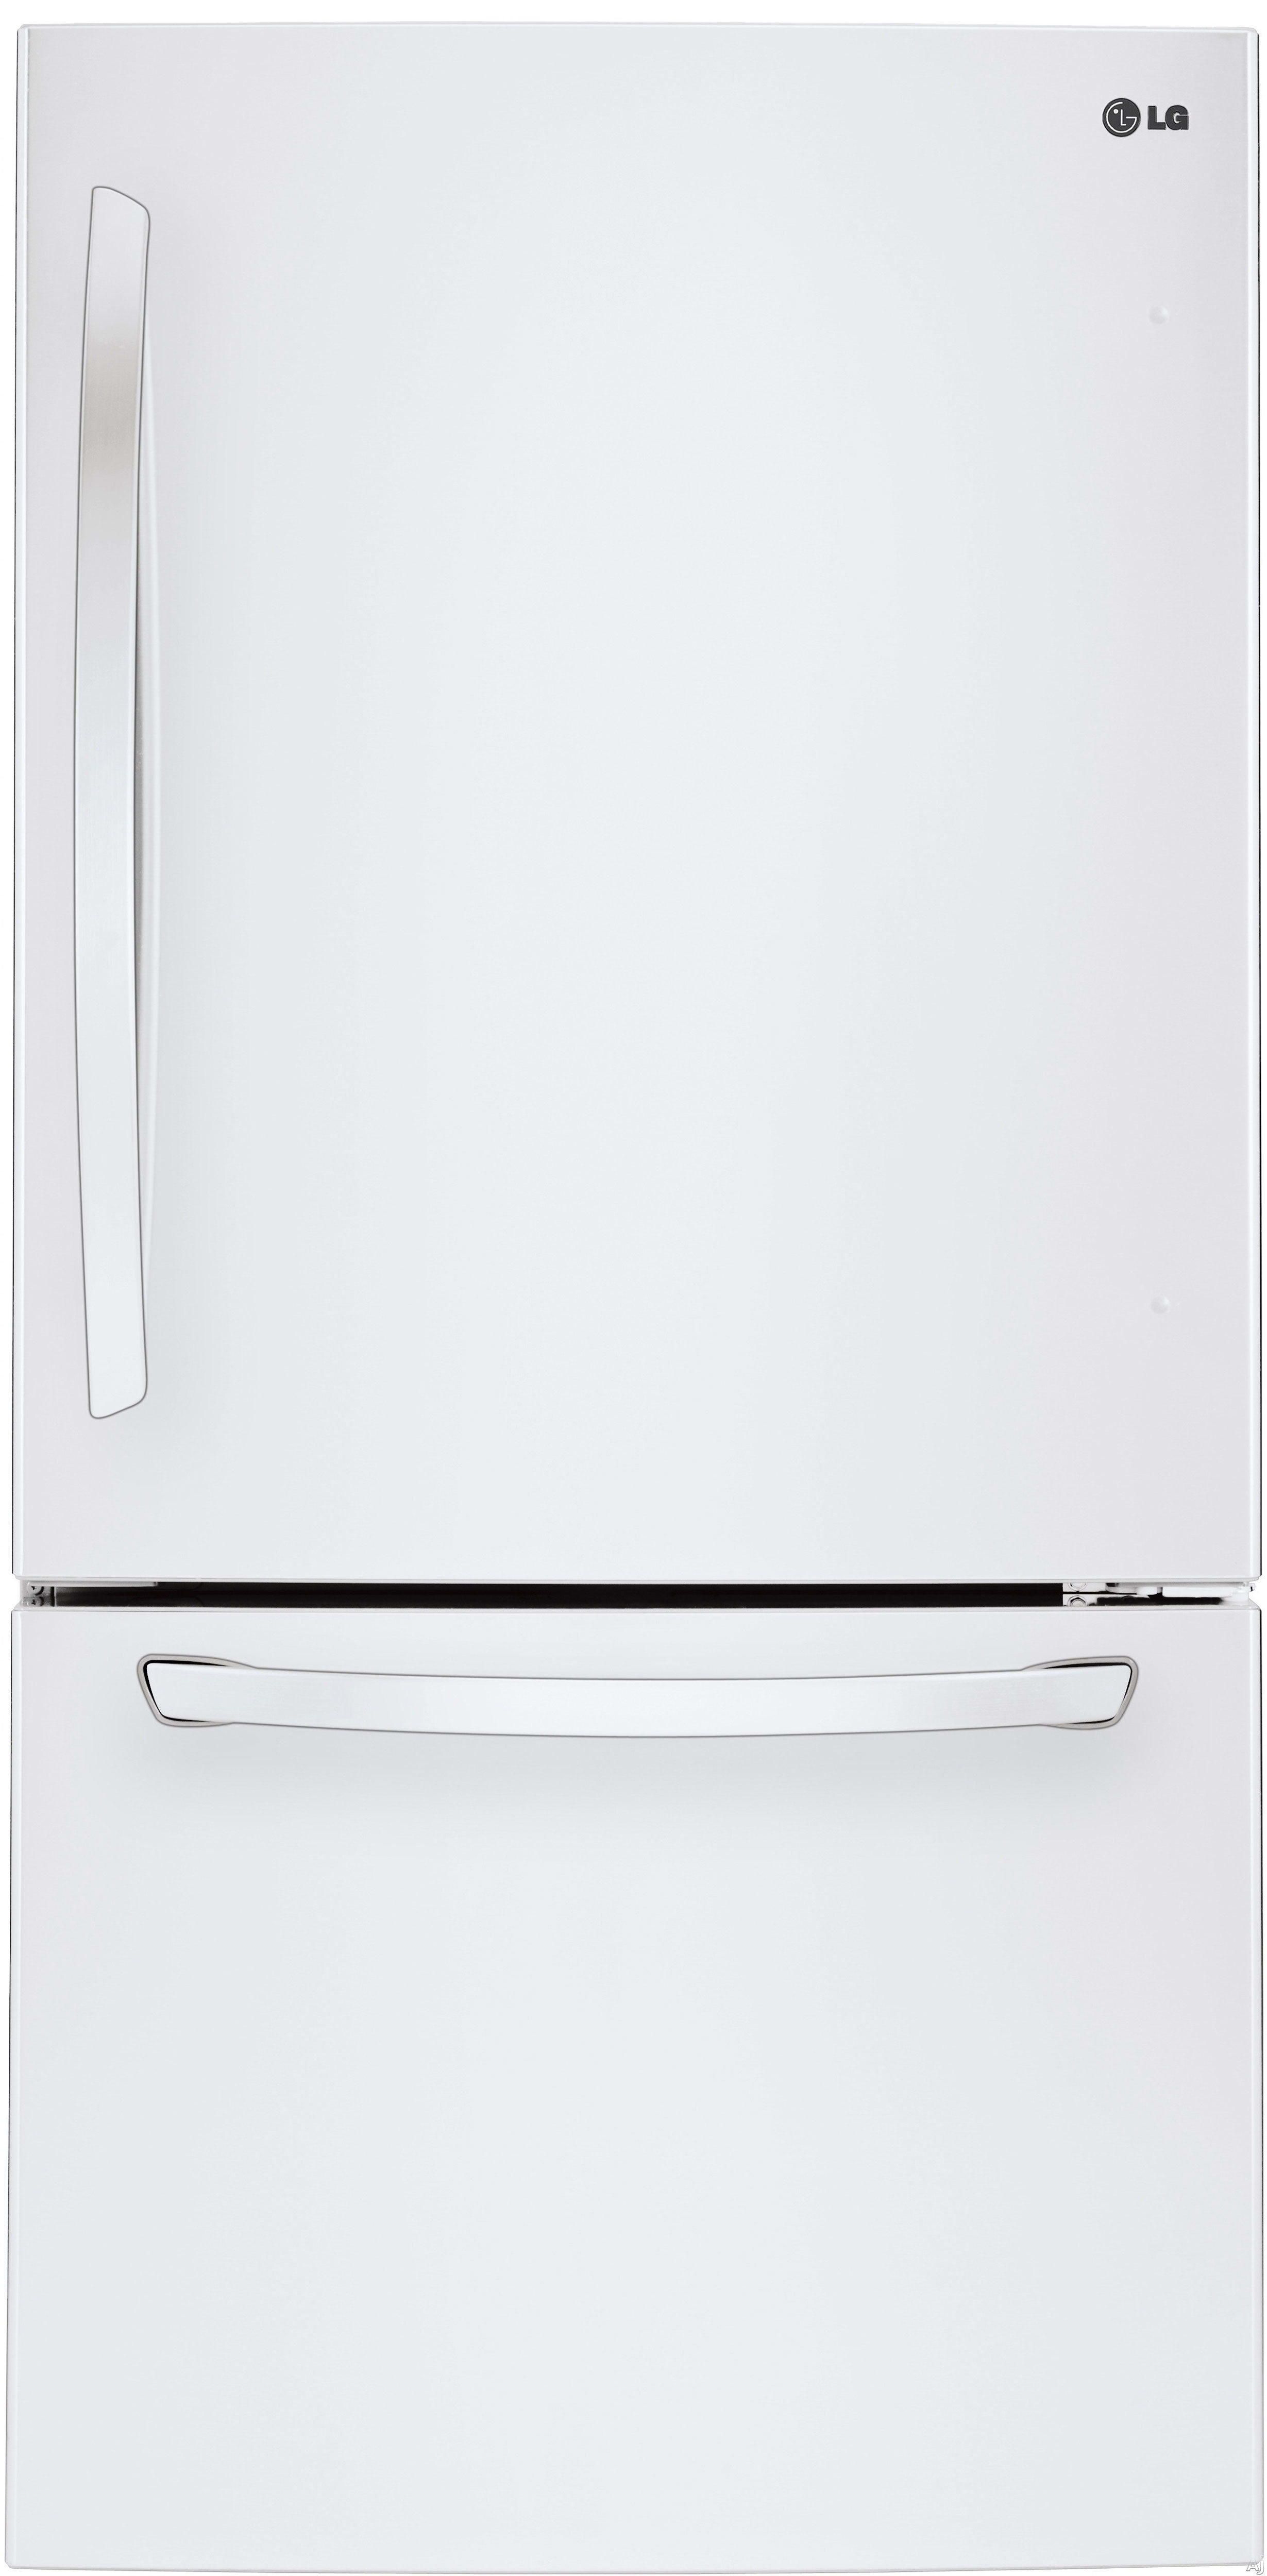 If stainless isn't your thing, the LG LDCS24223W is the same fridge with a smooth white finish.